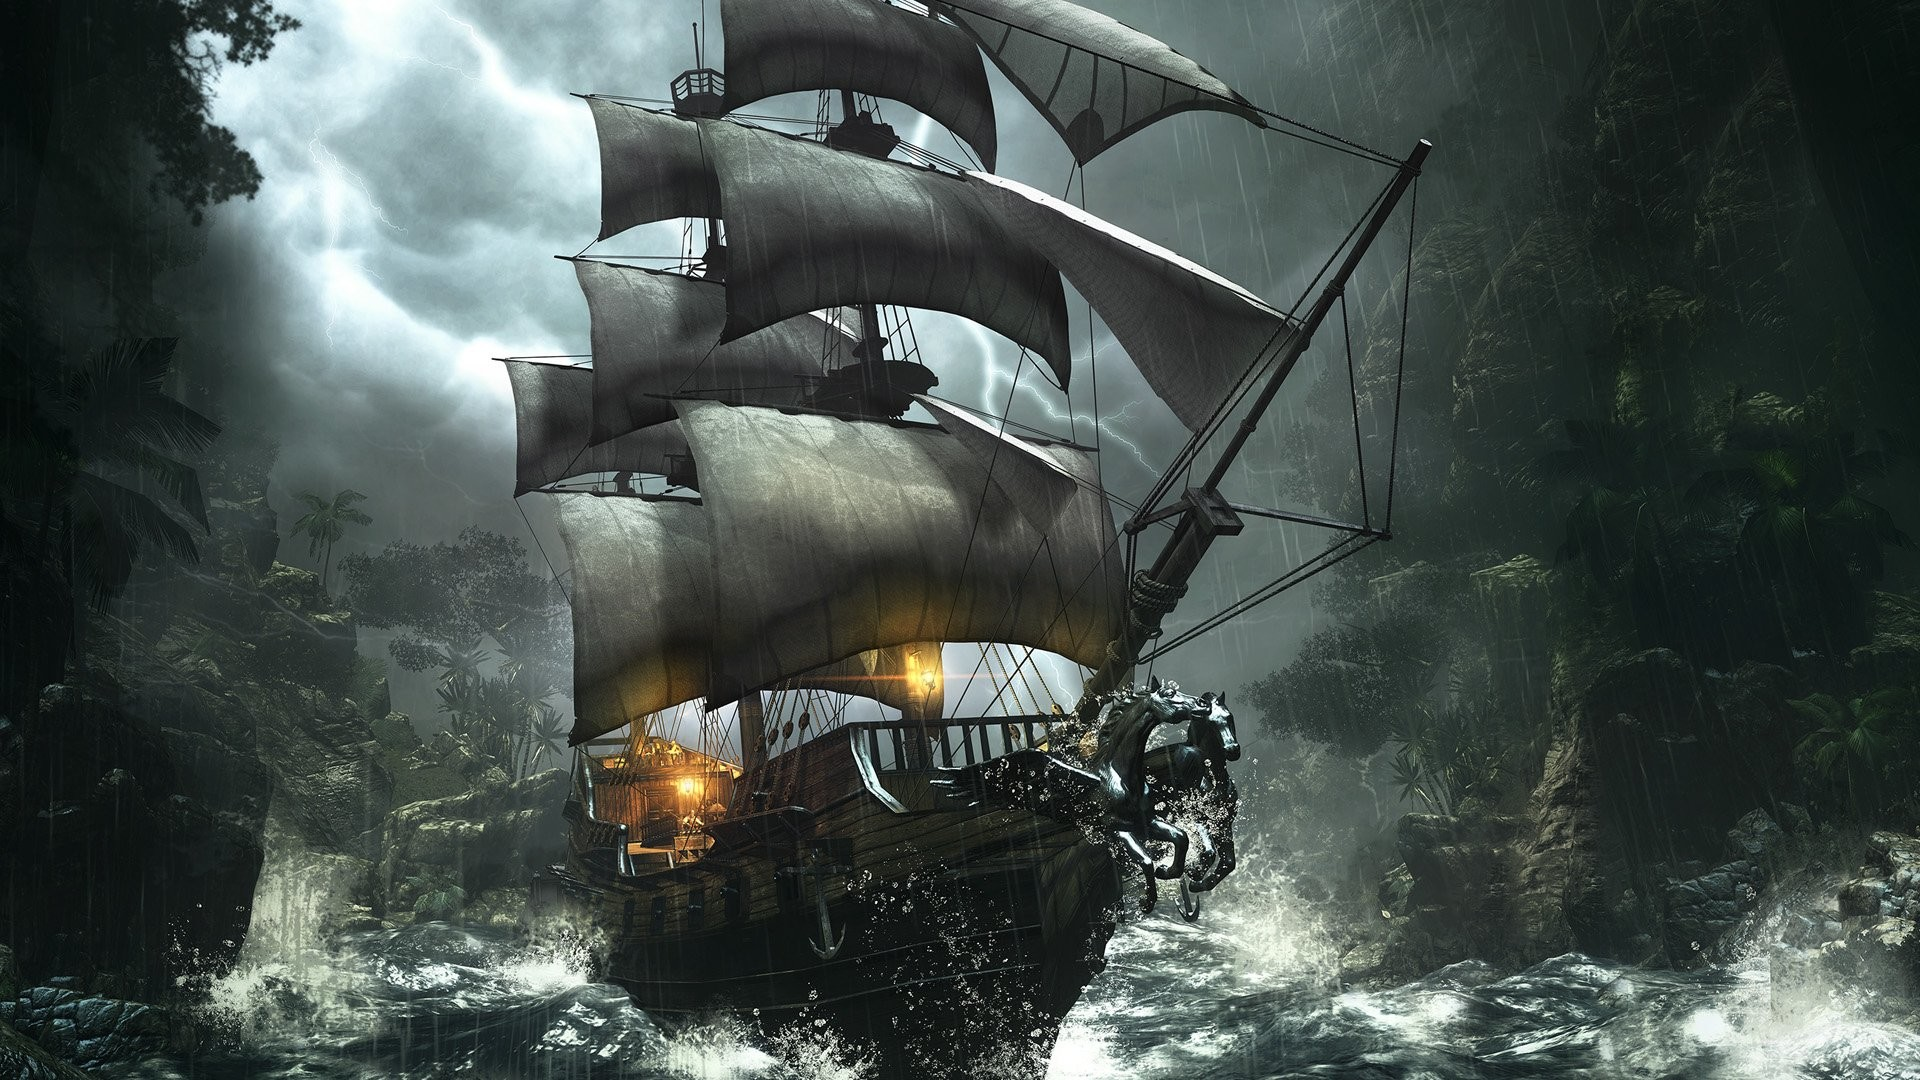 1920x1080 Find out: Pirate Ship wallpaper on http://hdpicorner.com/pirate-ship/ |  Desktop Wallpapers | Pinterest | Pirate ships, Wallpaper and Ships